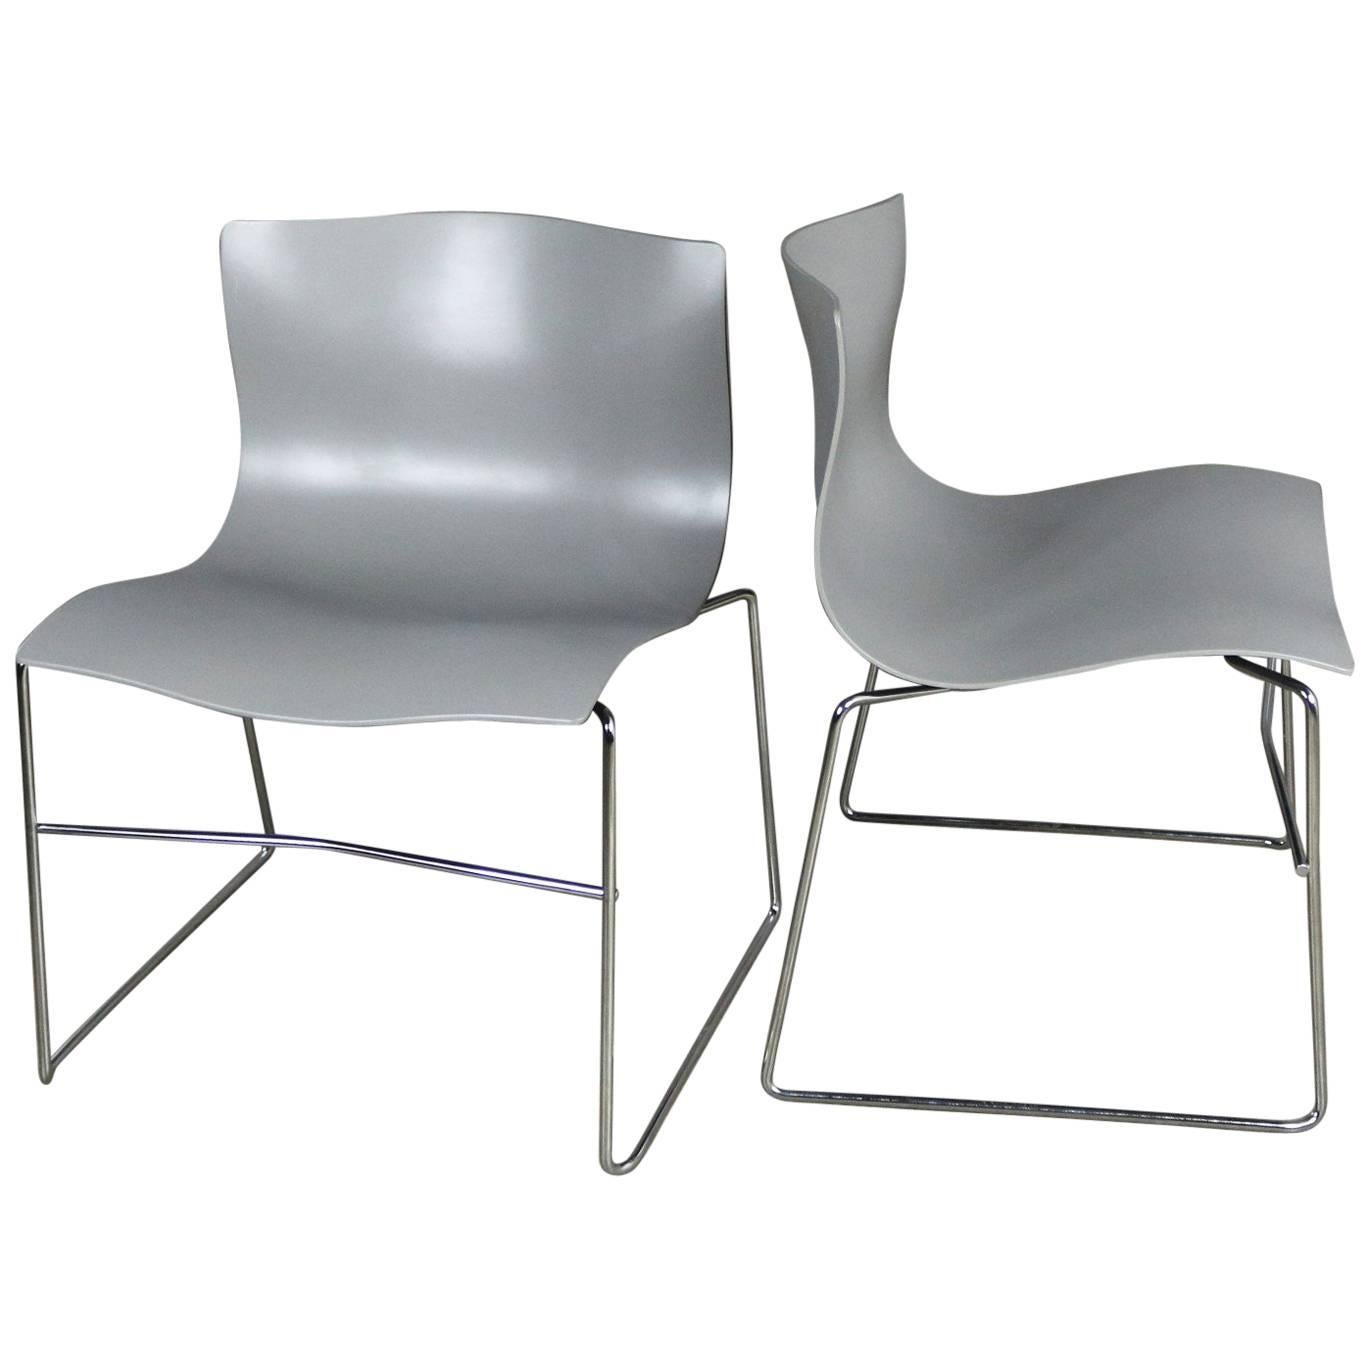 Sedia Diamond Knoll Knoll Handkerchief Side Chairs In Gray By Massimo Lella Vignelli A Pair